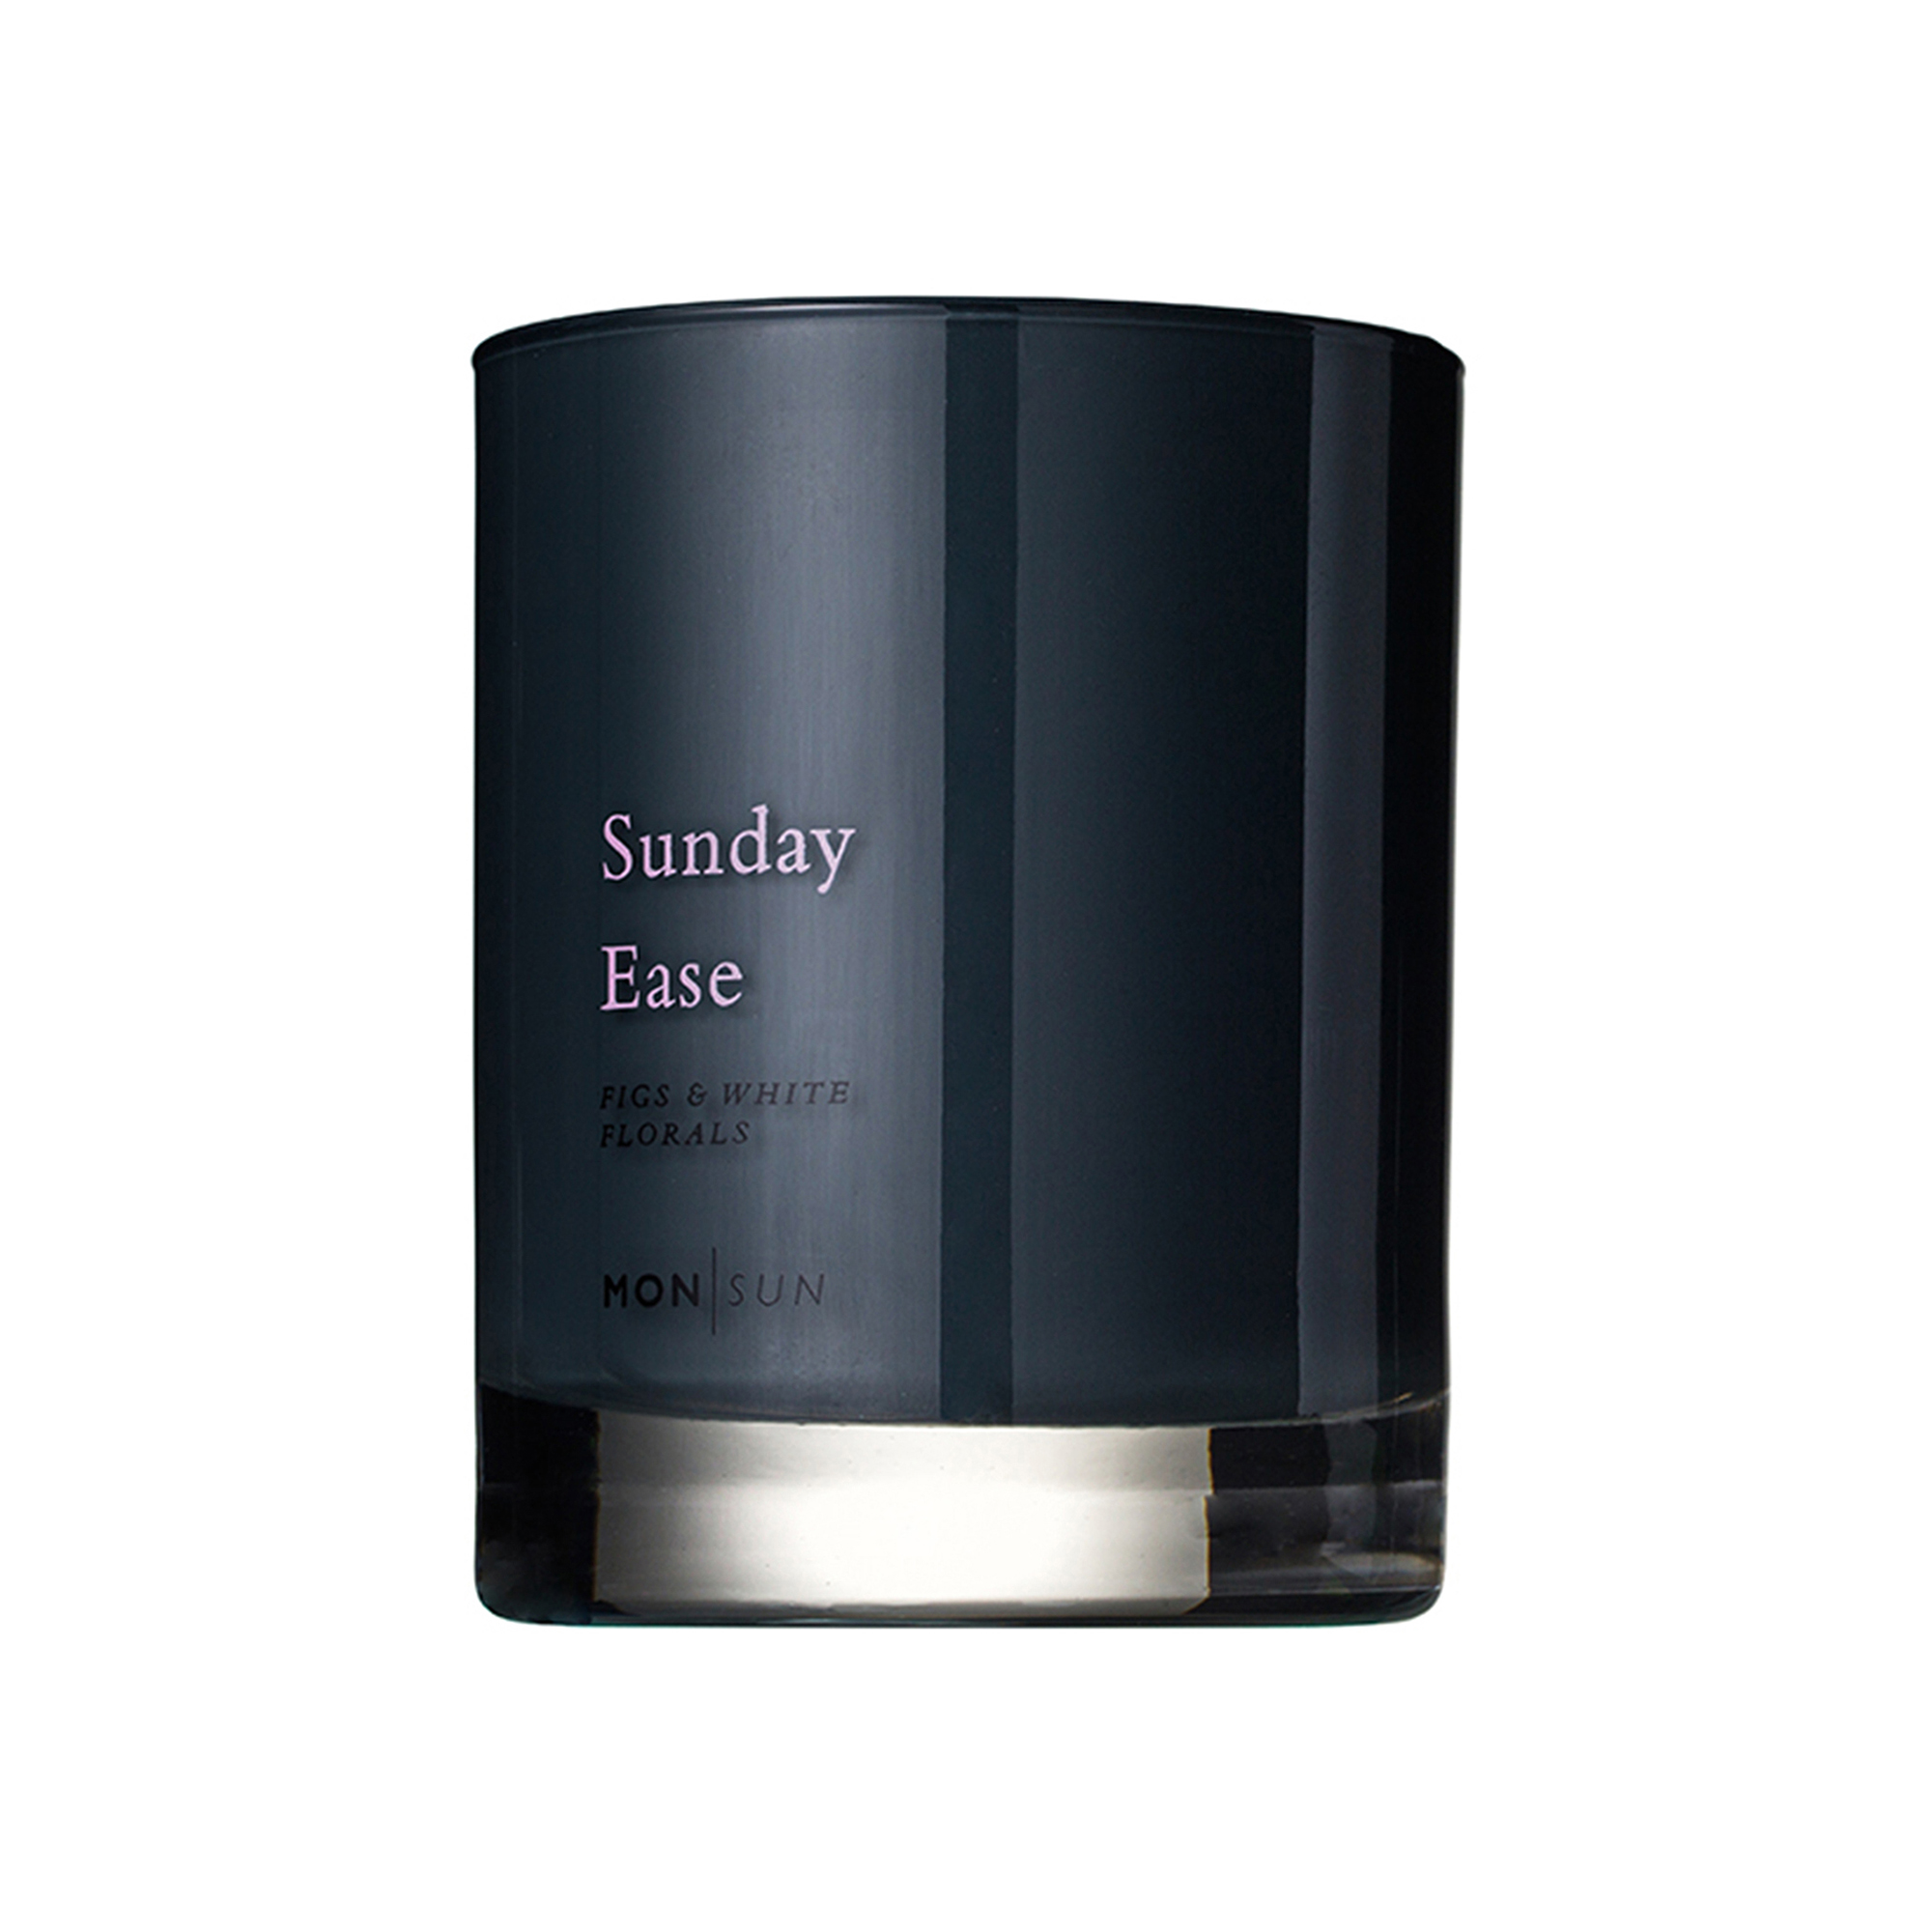 Sunday Ease Calming Oats Scented Candle 210 g